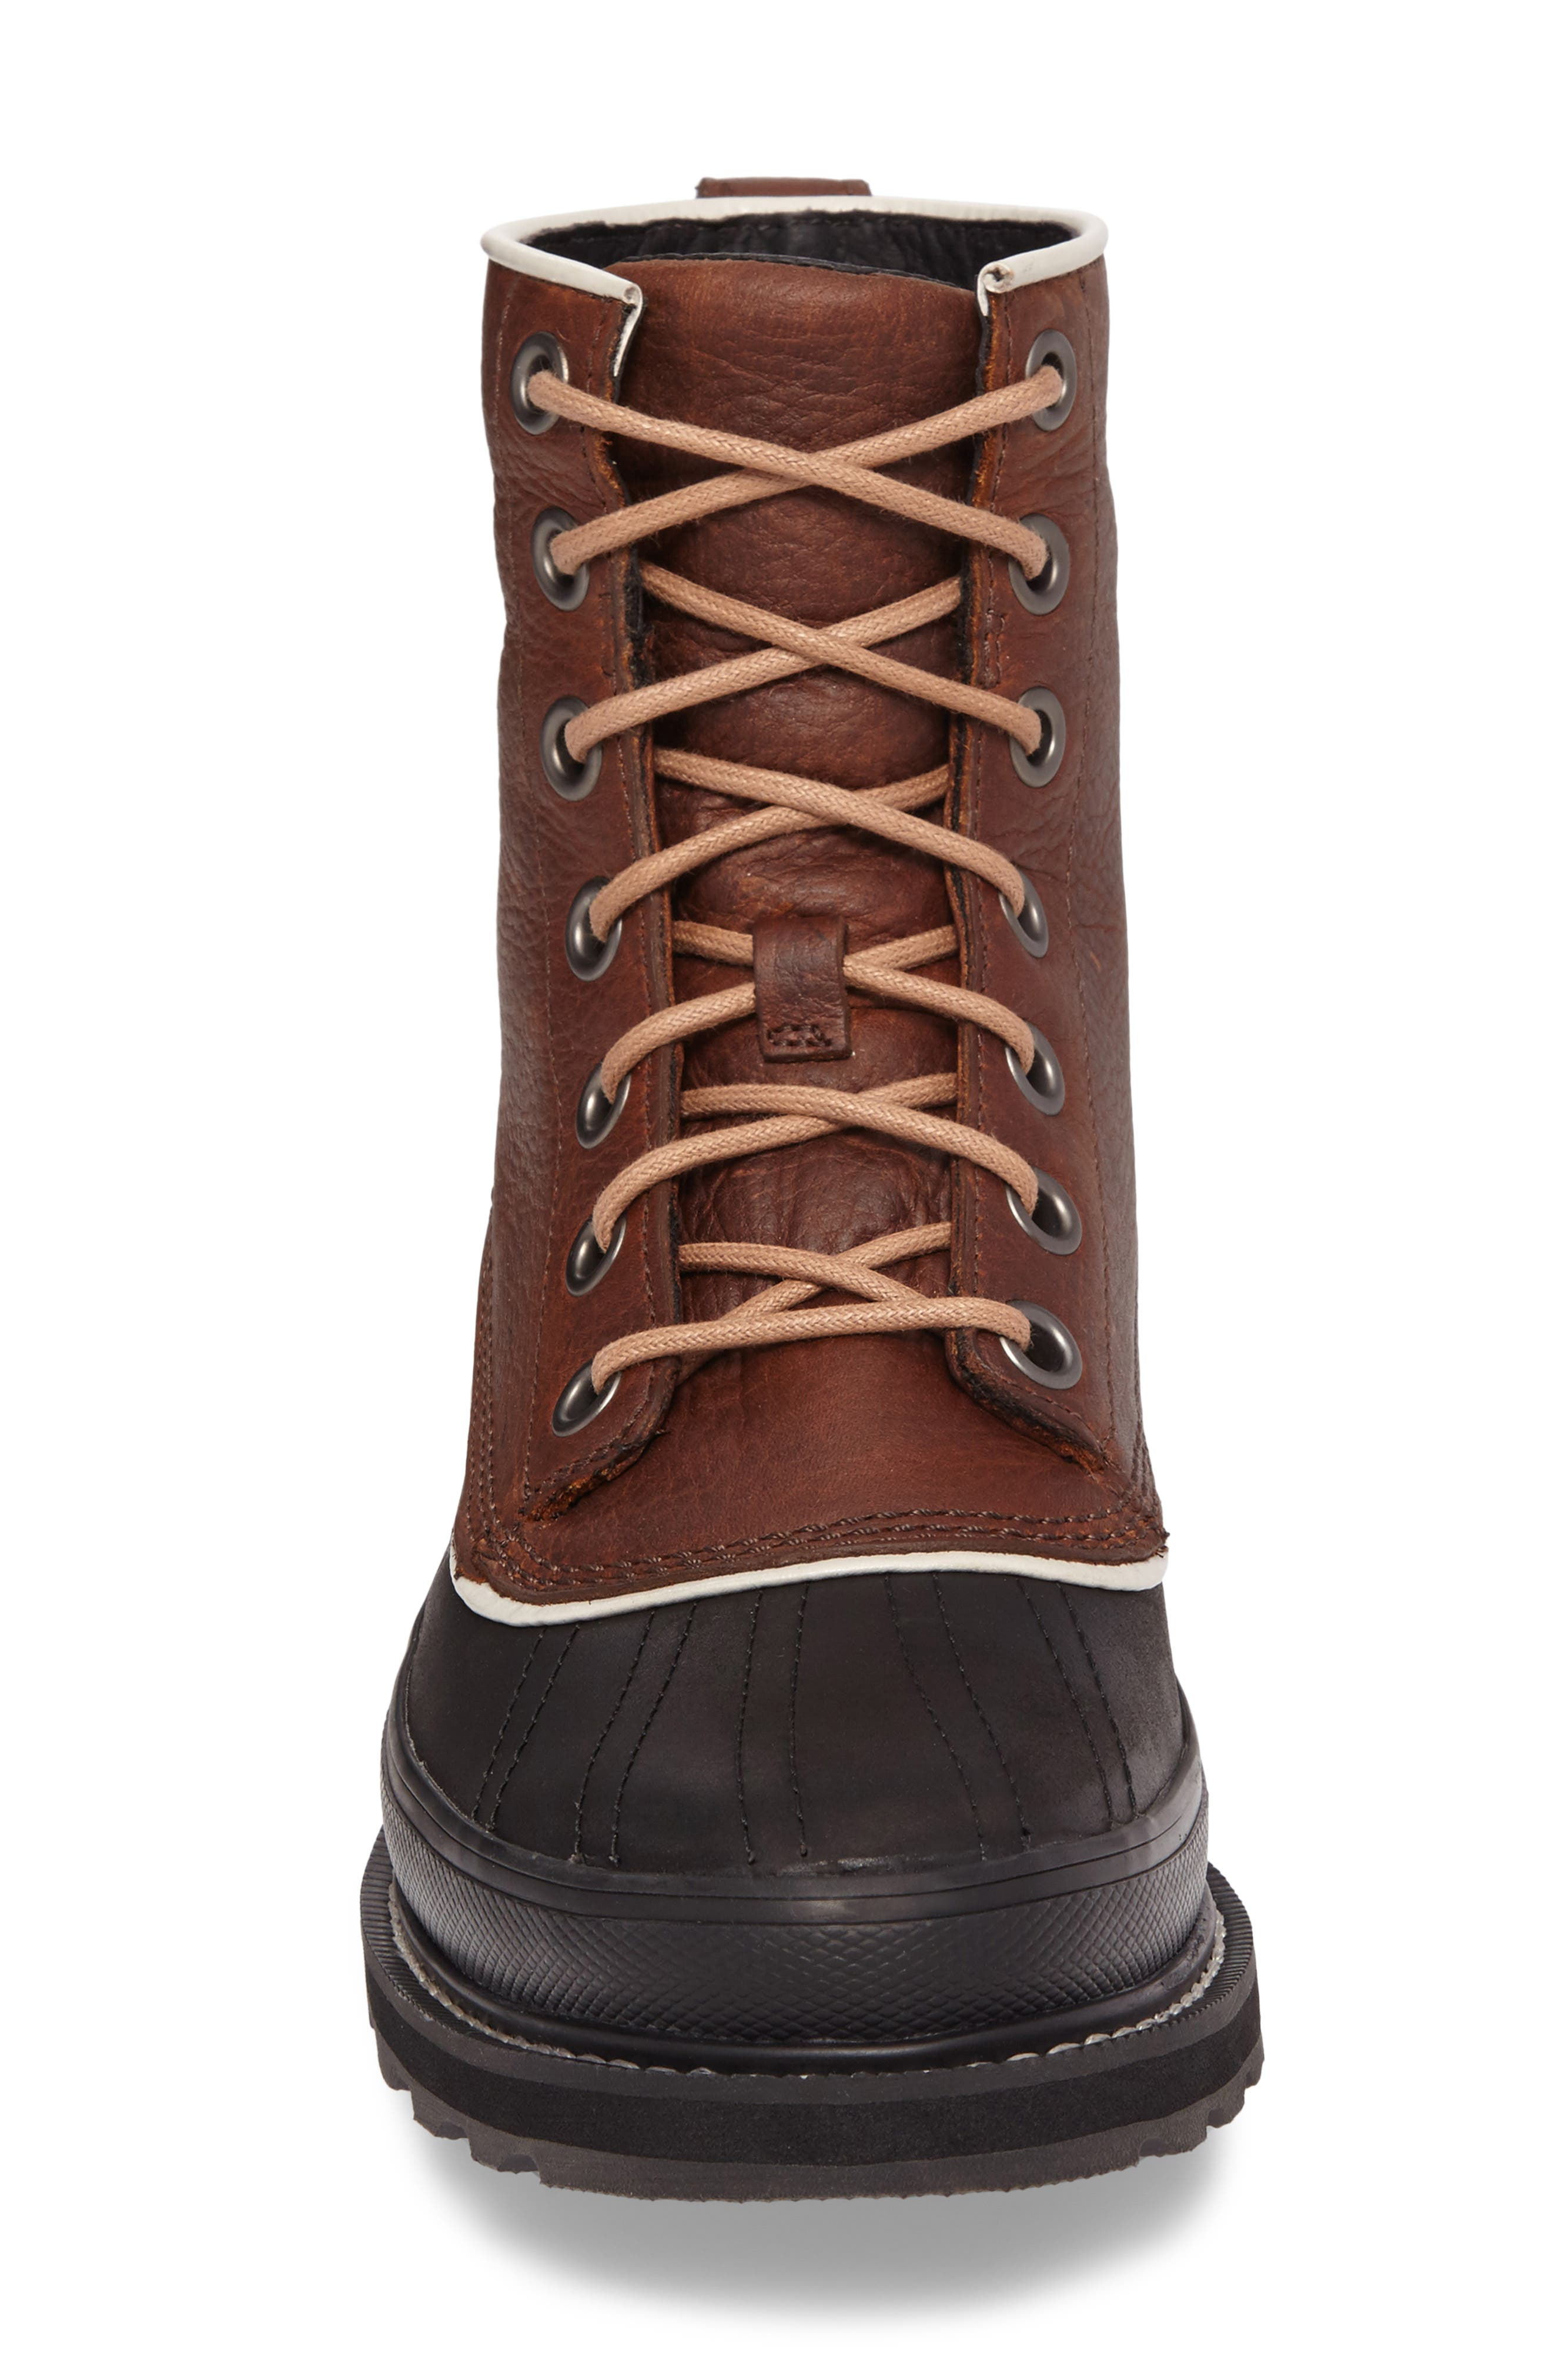 Madson 1964 Waterproof Boot,                             Alternate thumbnail 4, color,                             200